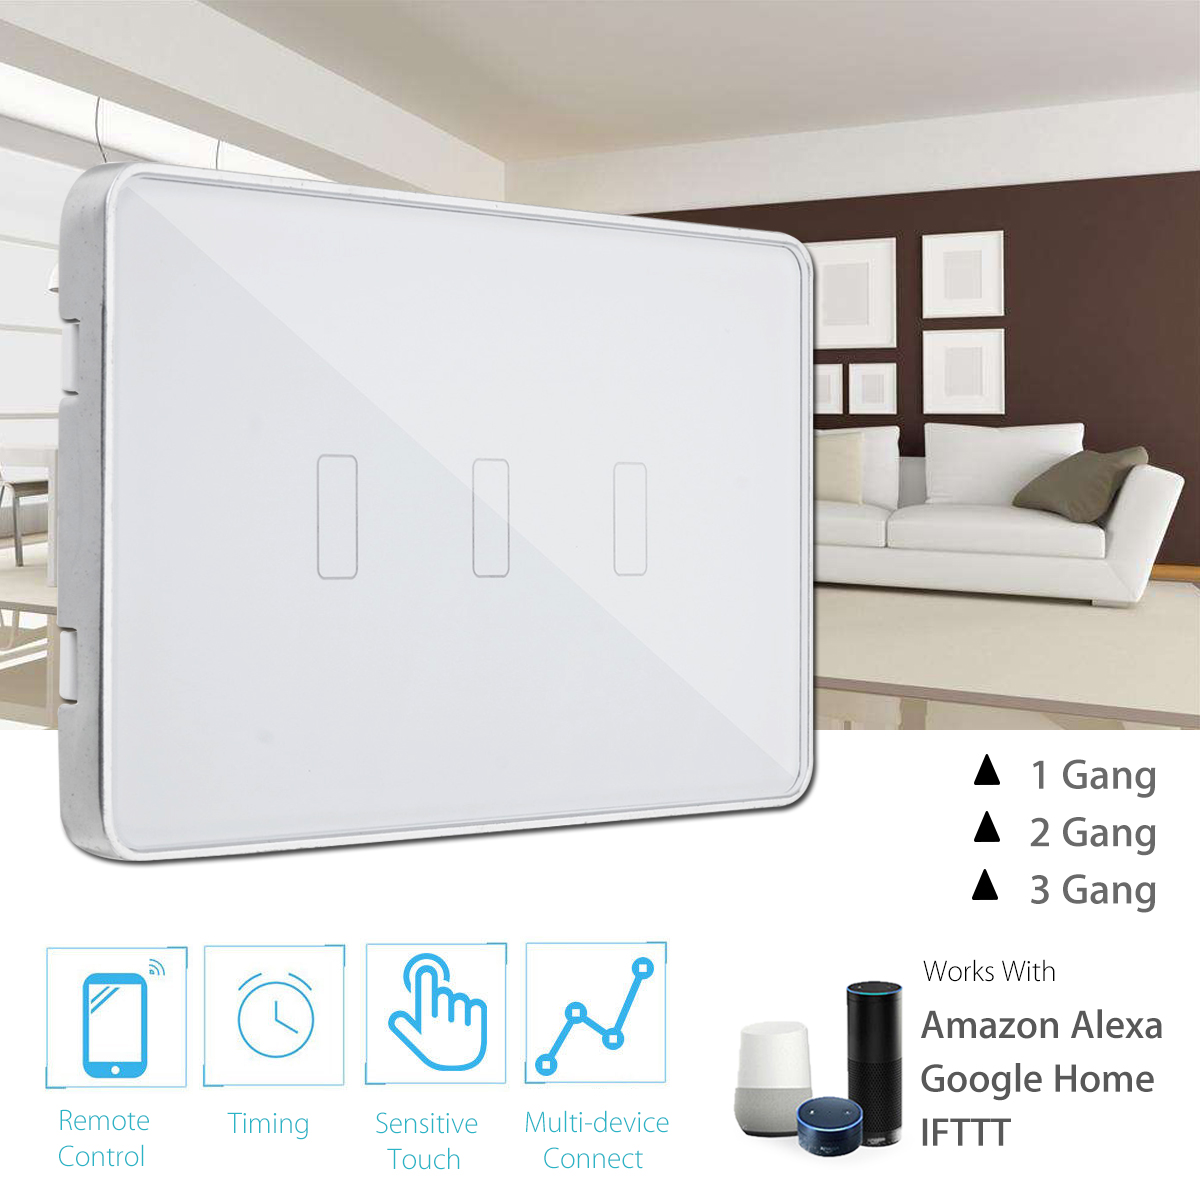 US Wireless WIFI Smart Switch Type 1 2 3 Gang Touchs Control Panel Remote Control Voice Control Work With Alexa Google Home mini wifi rgb strip light controller with music control and voice control compatible with google home